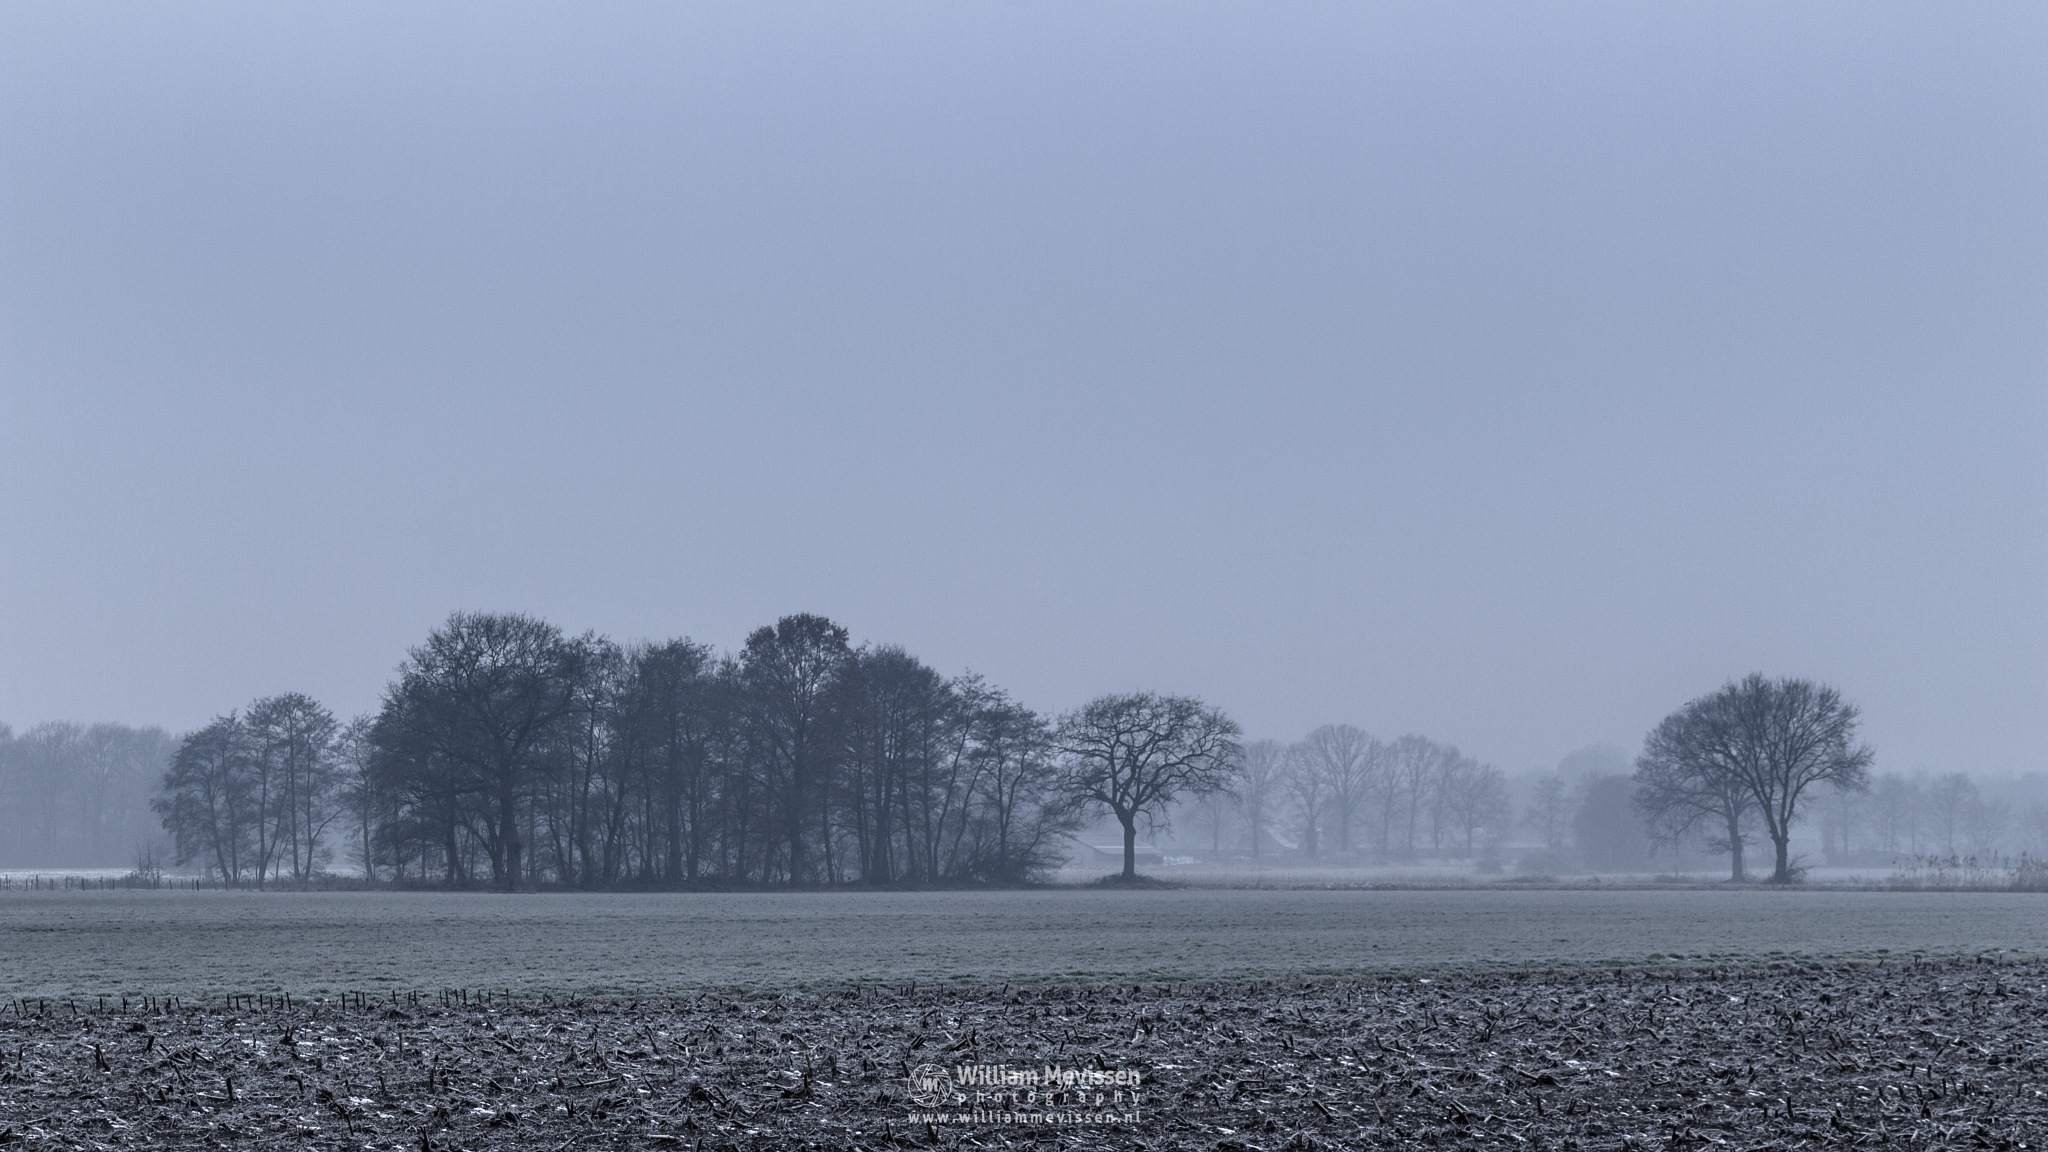 Photo in Landscape #venray #brabander #limburg #noord-limburg #merselo #nature #trees #forest #netherlands #winter #mist #rural #agriculture #farming